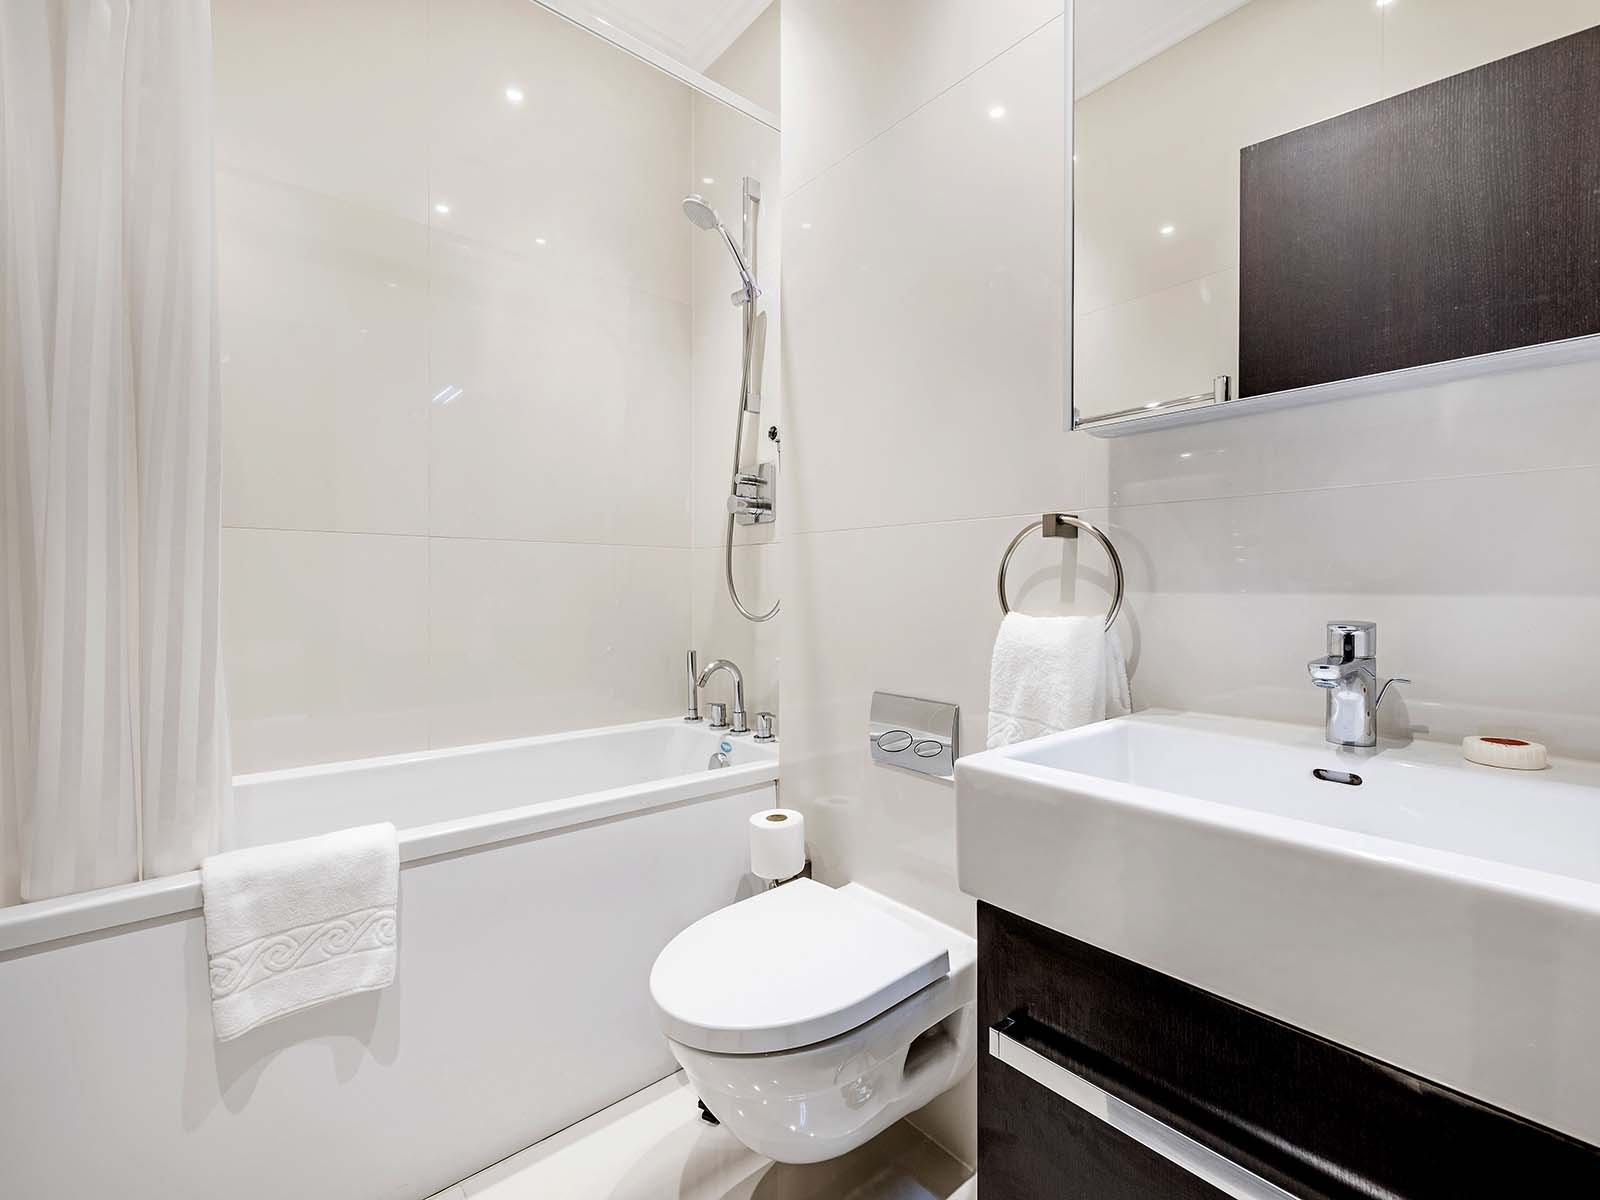 Bathroom at130 Queens Gate Apartments, South Kensington, London - Citybase Apartments